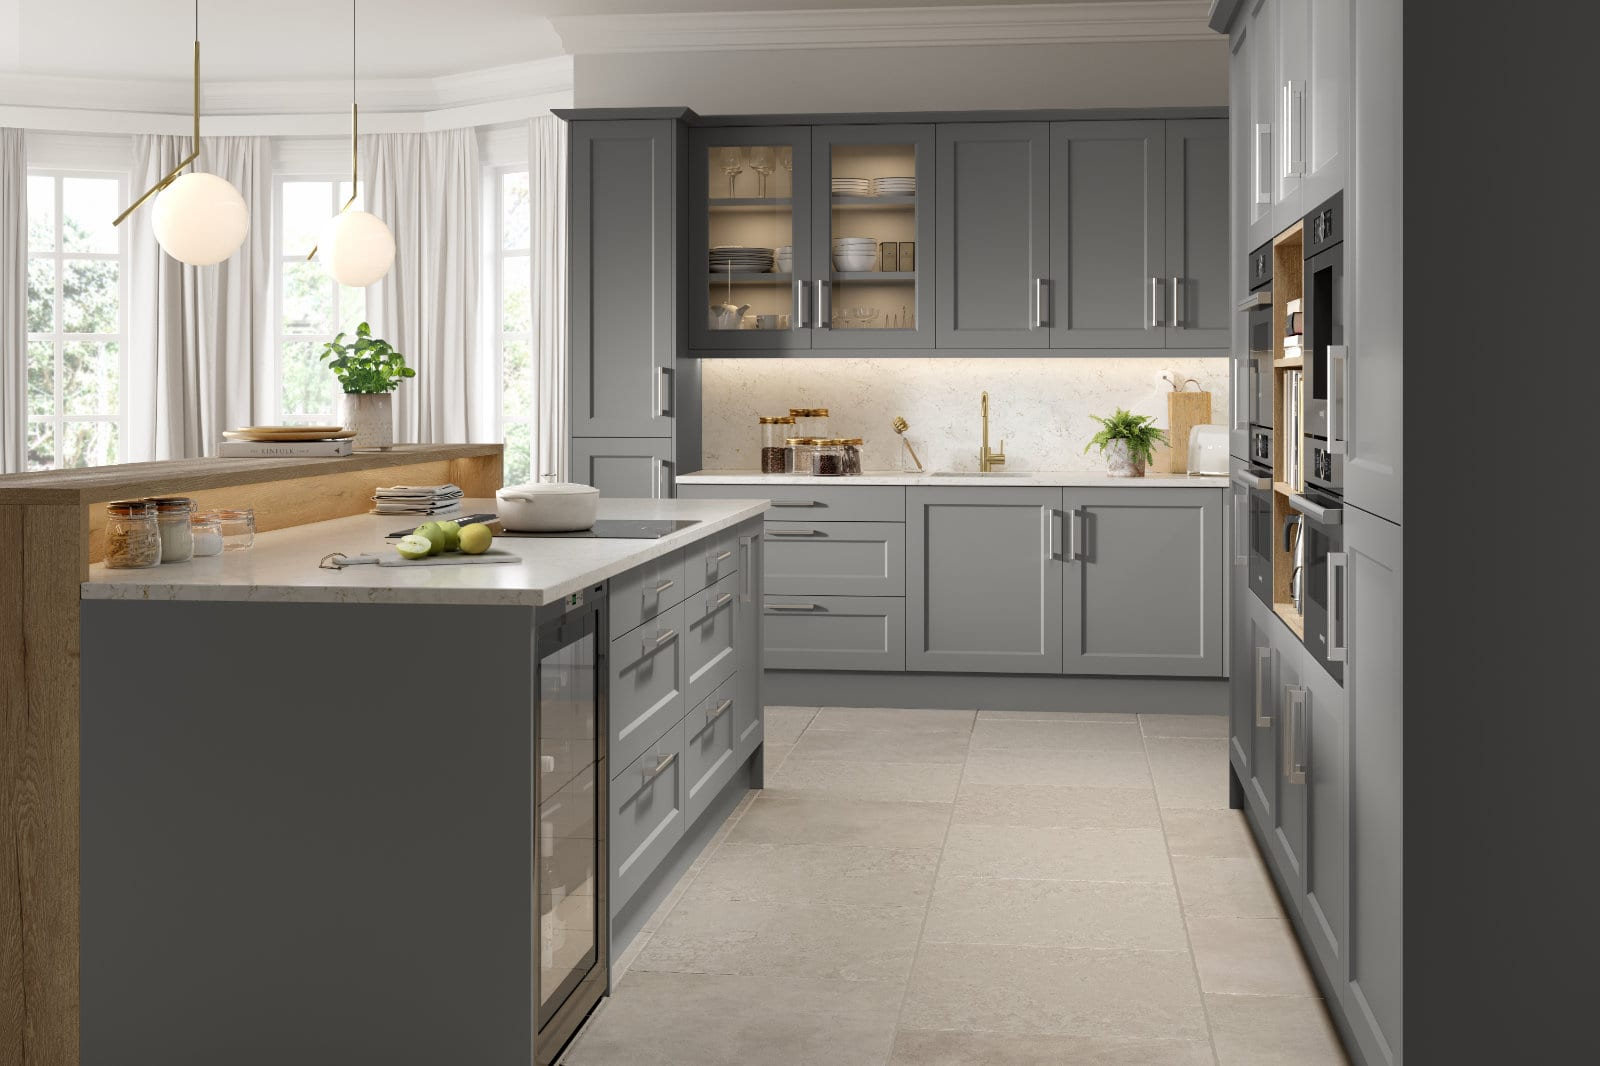 Blossom Avenue Matt Dust Grey Style Richmond L-Shaped Kitchen With Island | Right Choice Kitchens, South Wales